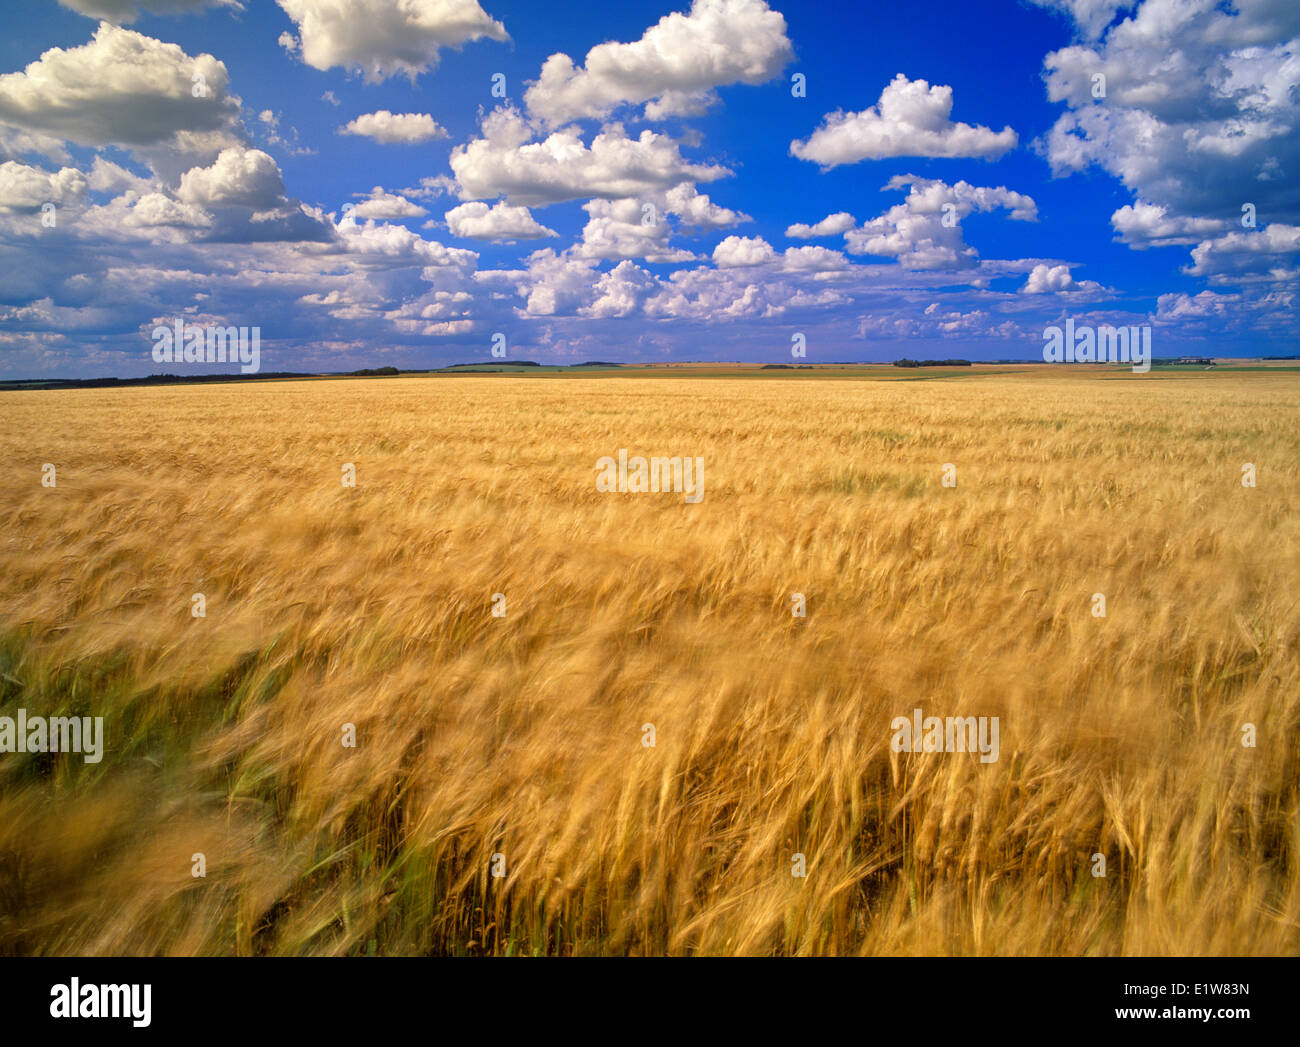 Wind-blown maturing barley field and sky with cumulus clouds, Tiger Hills, Manitoba, Canada - Stock Image